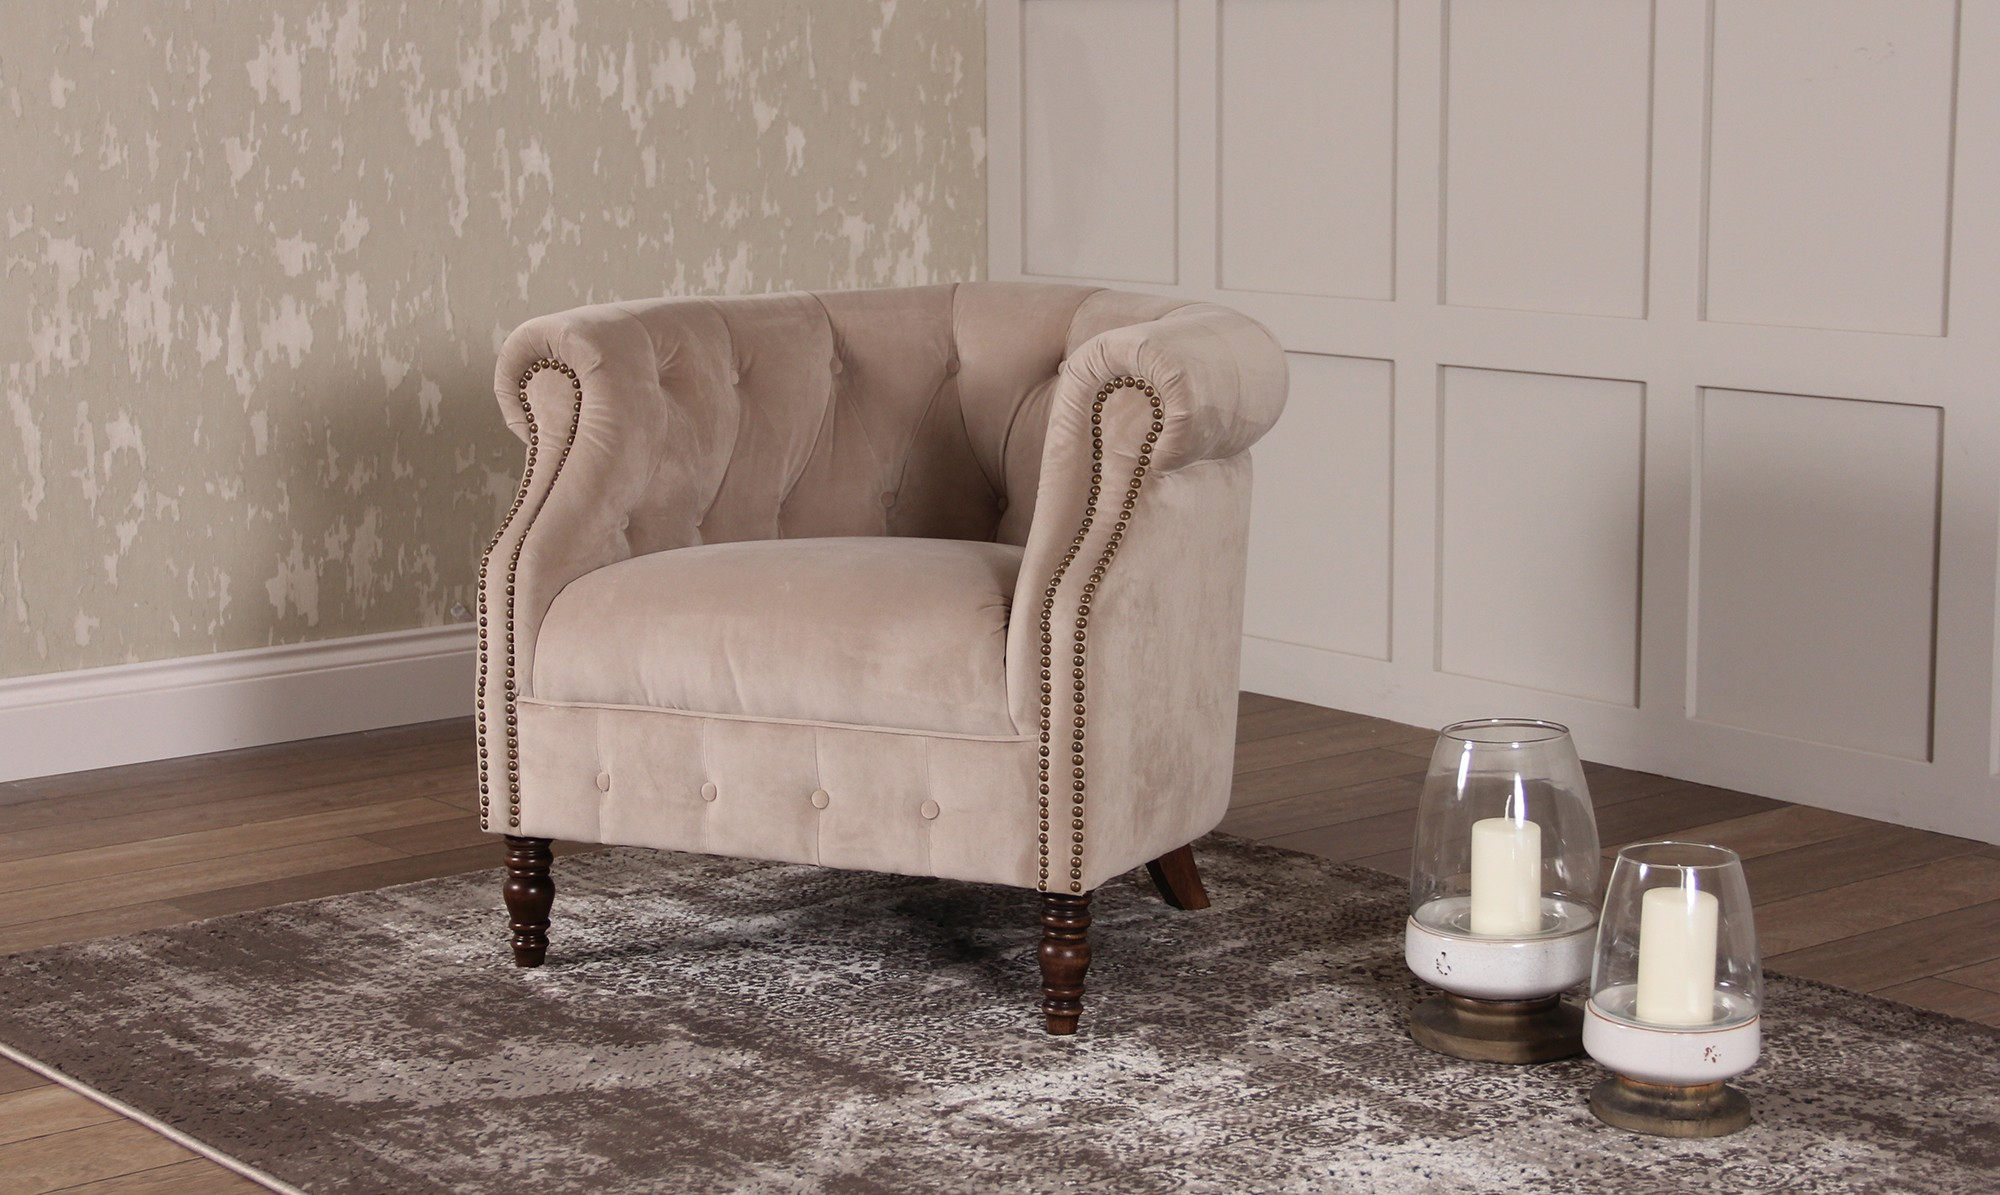 Westbourne chair